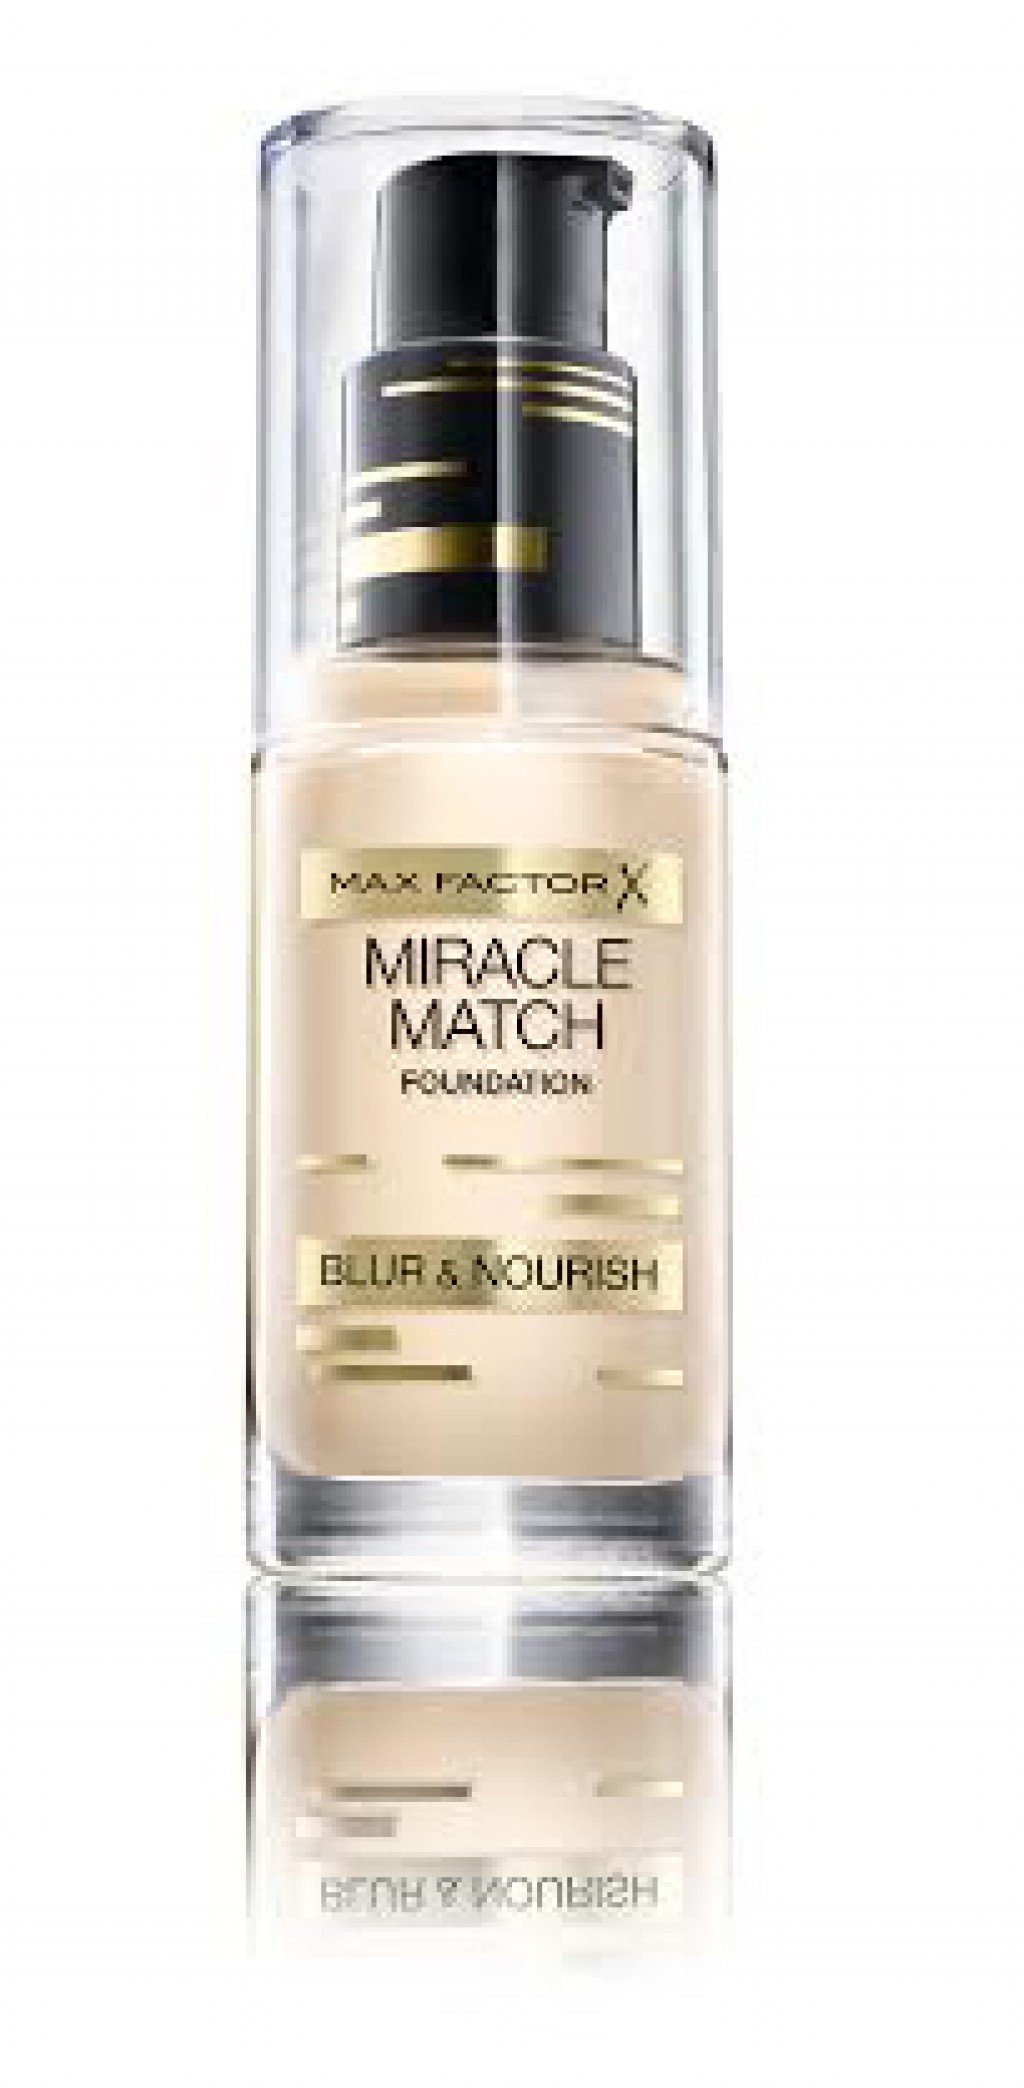 max factor miracle match foundation makeup beautyalmanac. Black Bedroom Furniture Sets. Home Design Ideas